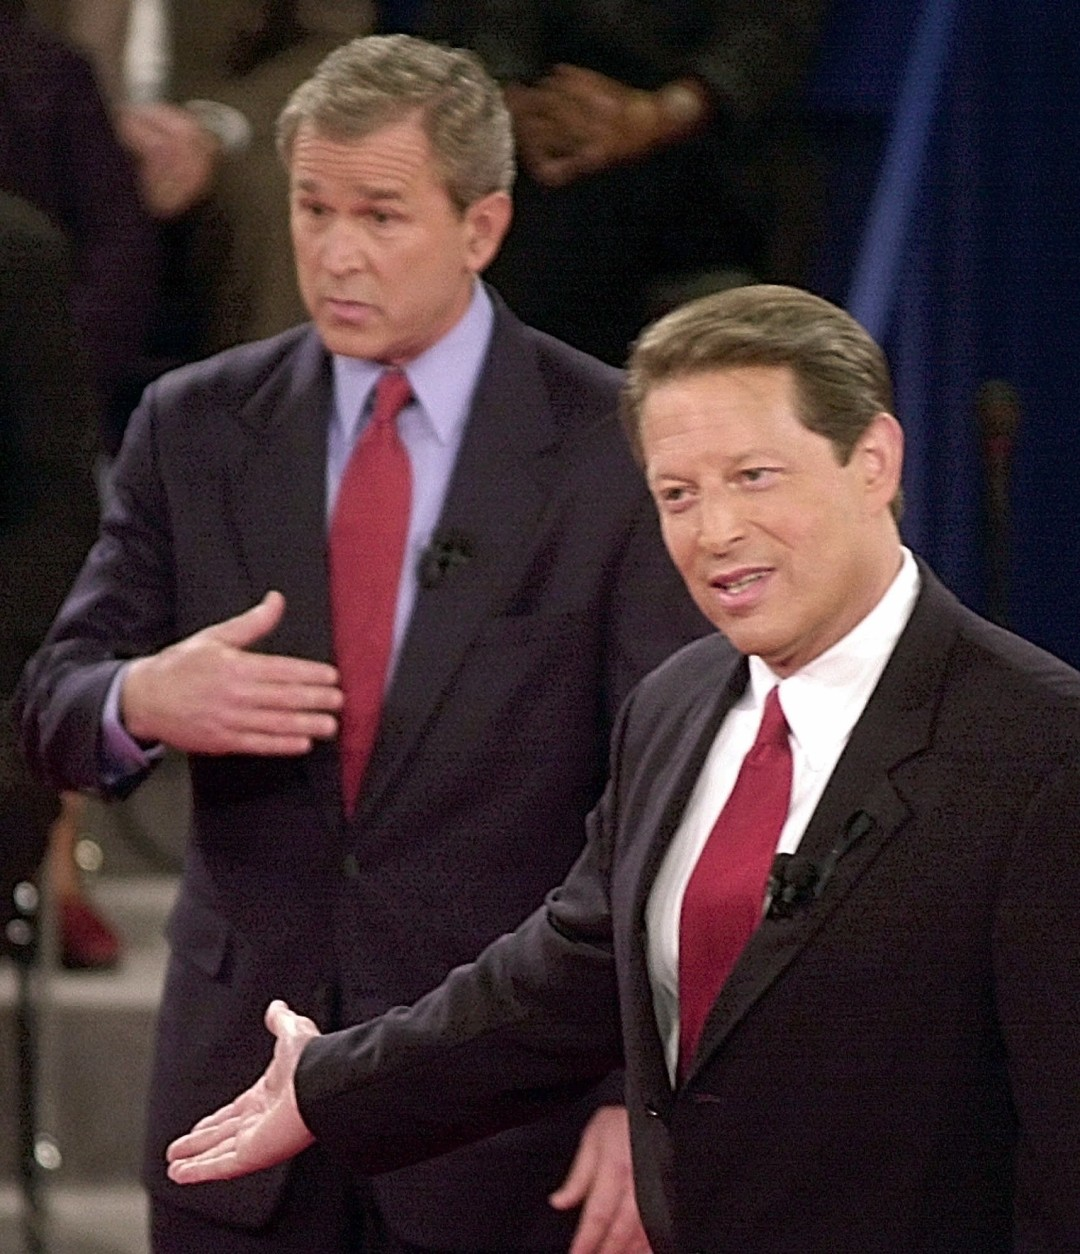 FILE - In this Oct. 17, 2000 file photo, Republican presidential candidate Texas Gov. George W. Bush, left, and Democratic presidential candidate Vice President Al Gore gesture during their third and final debate at Washington University in St. Louis. For presidential candidates, the town hall debate is a test of stagecraft as much as substance. When Hillary Clinton and Donald Trump meet in the Sunday, Oct.9, 2016, contest, they'll be fielding questions from undecided voters seated nearby. In an added dose of unpredictability, the format allows the candidates to move around the stage, putting them in unusually close proximity to each other. (AP Photo/Ron Edmonds, File)